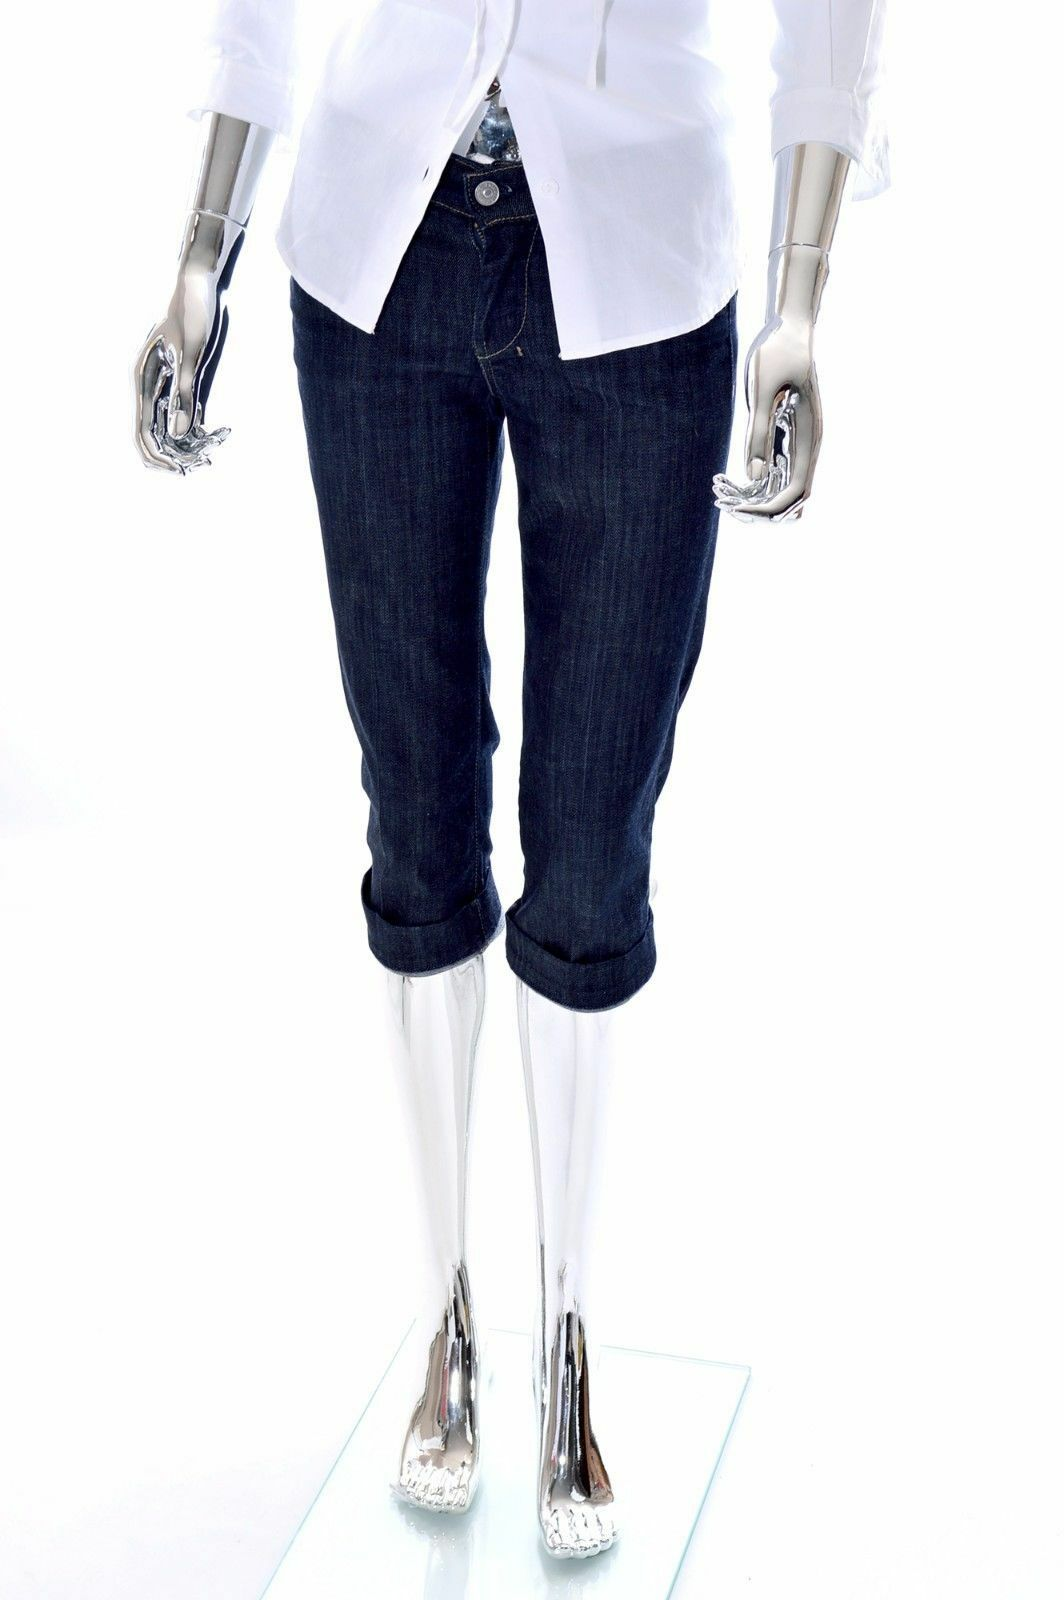 189 NEW 7 For All Mankind Dojo Womens Designer Stretch Crop 3 4 Jeans Size 25